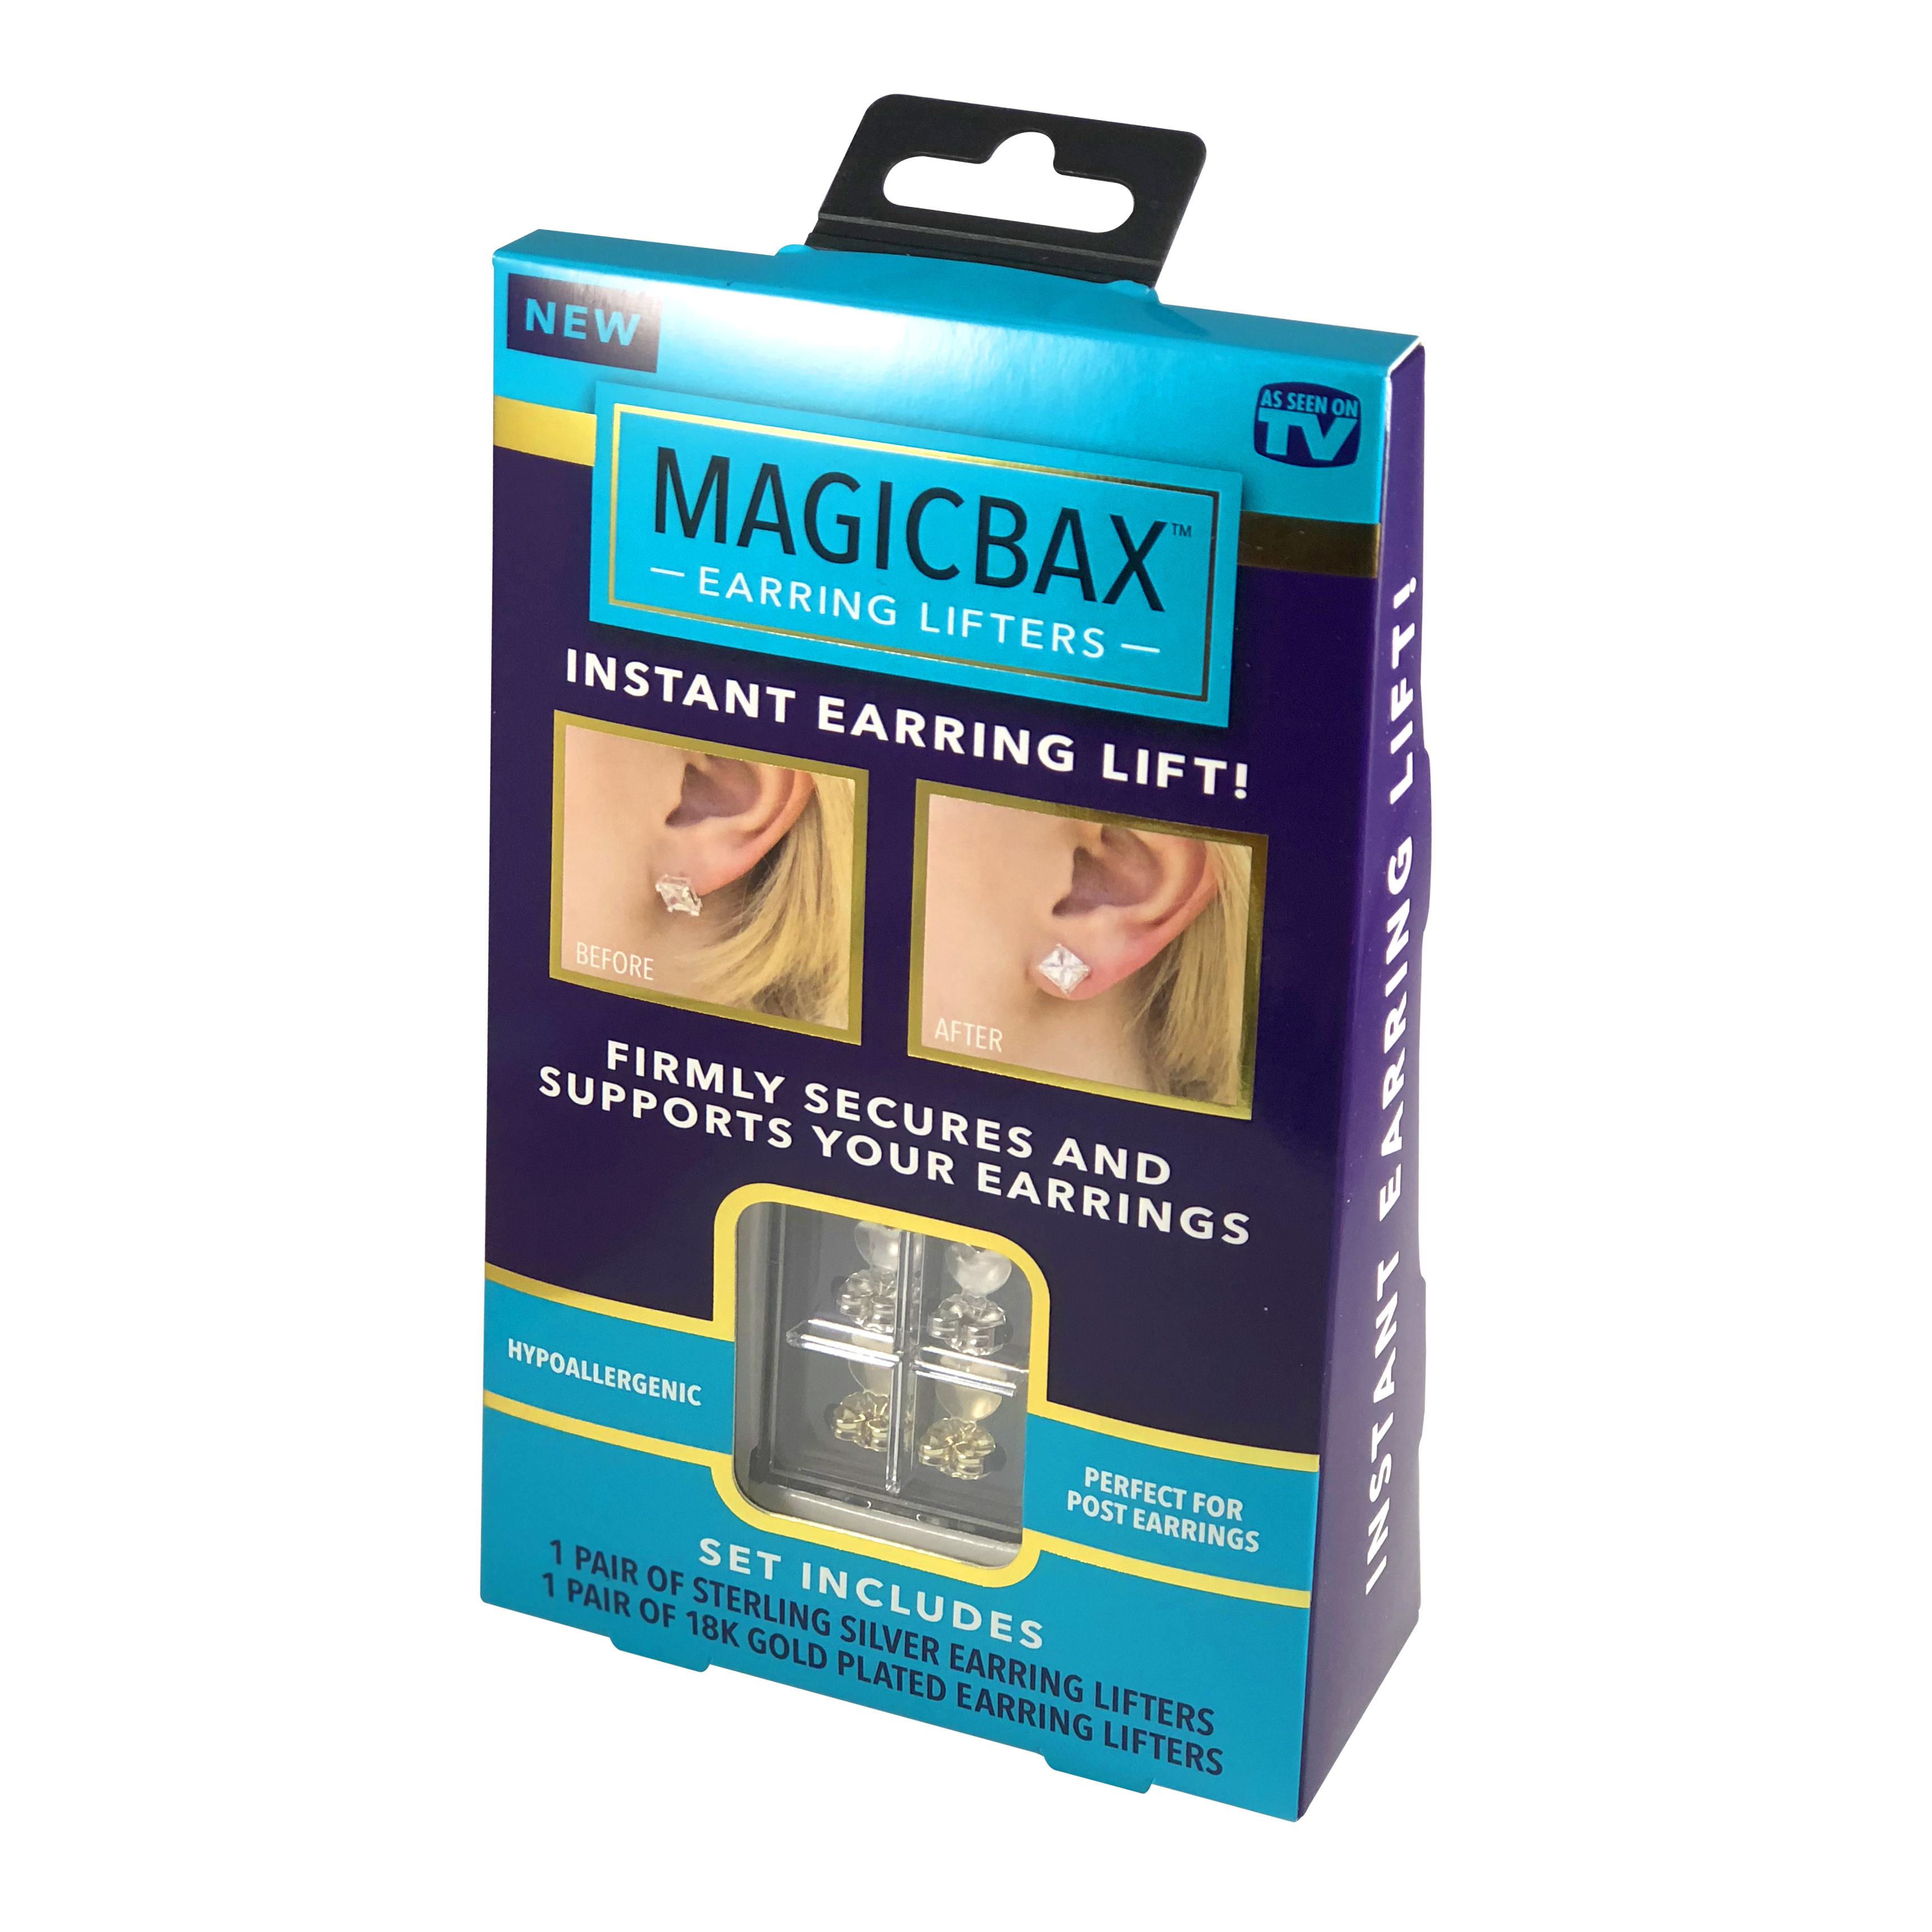 Magicbax Earing Support As Seen On TV